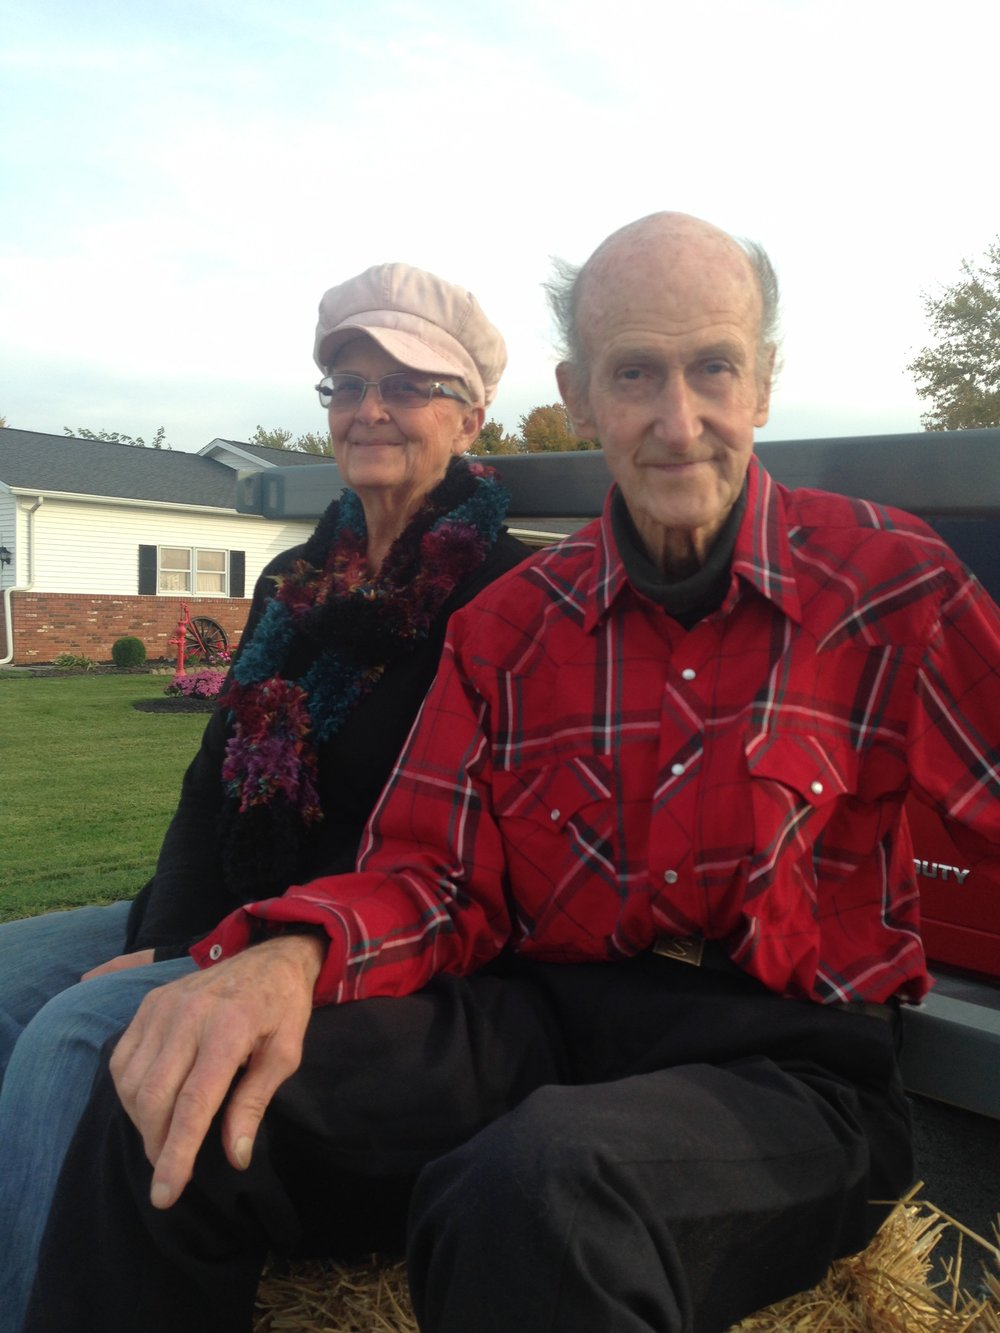 Jerry and his wife Marilyn sit on a float for the 2016 Benton-Ridge parade. The float paraded down main street to announce to the small village that the Solt family track would be opening in 2017.